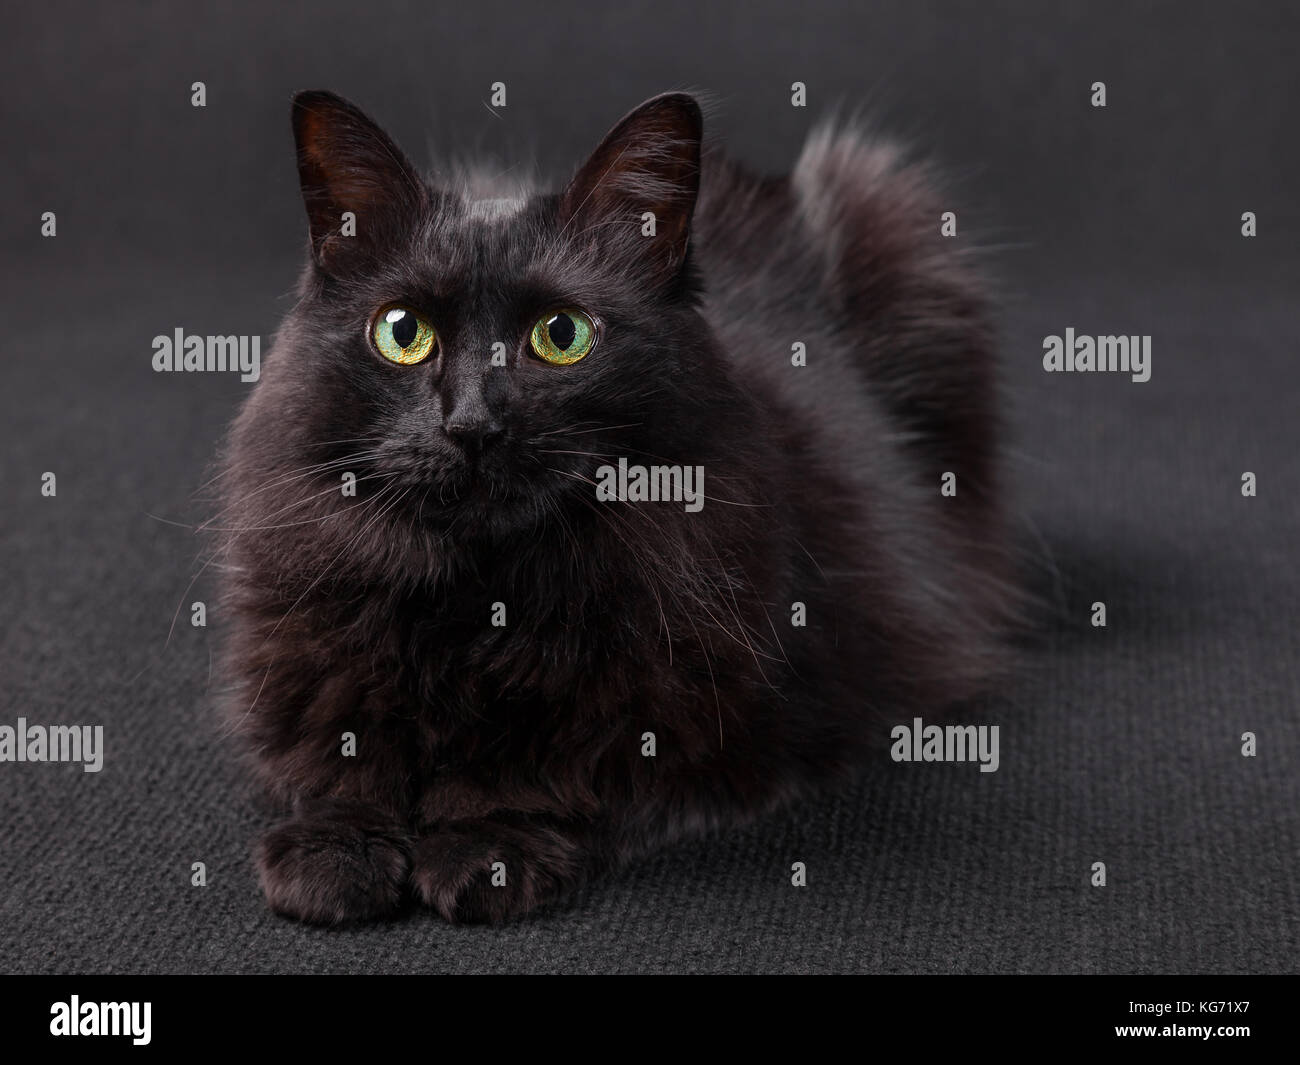 Black cat lying down facing the camera on a dark background. Long hair Turkish Angora breed. Adult female. - Stock Image